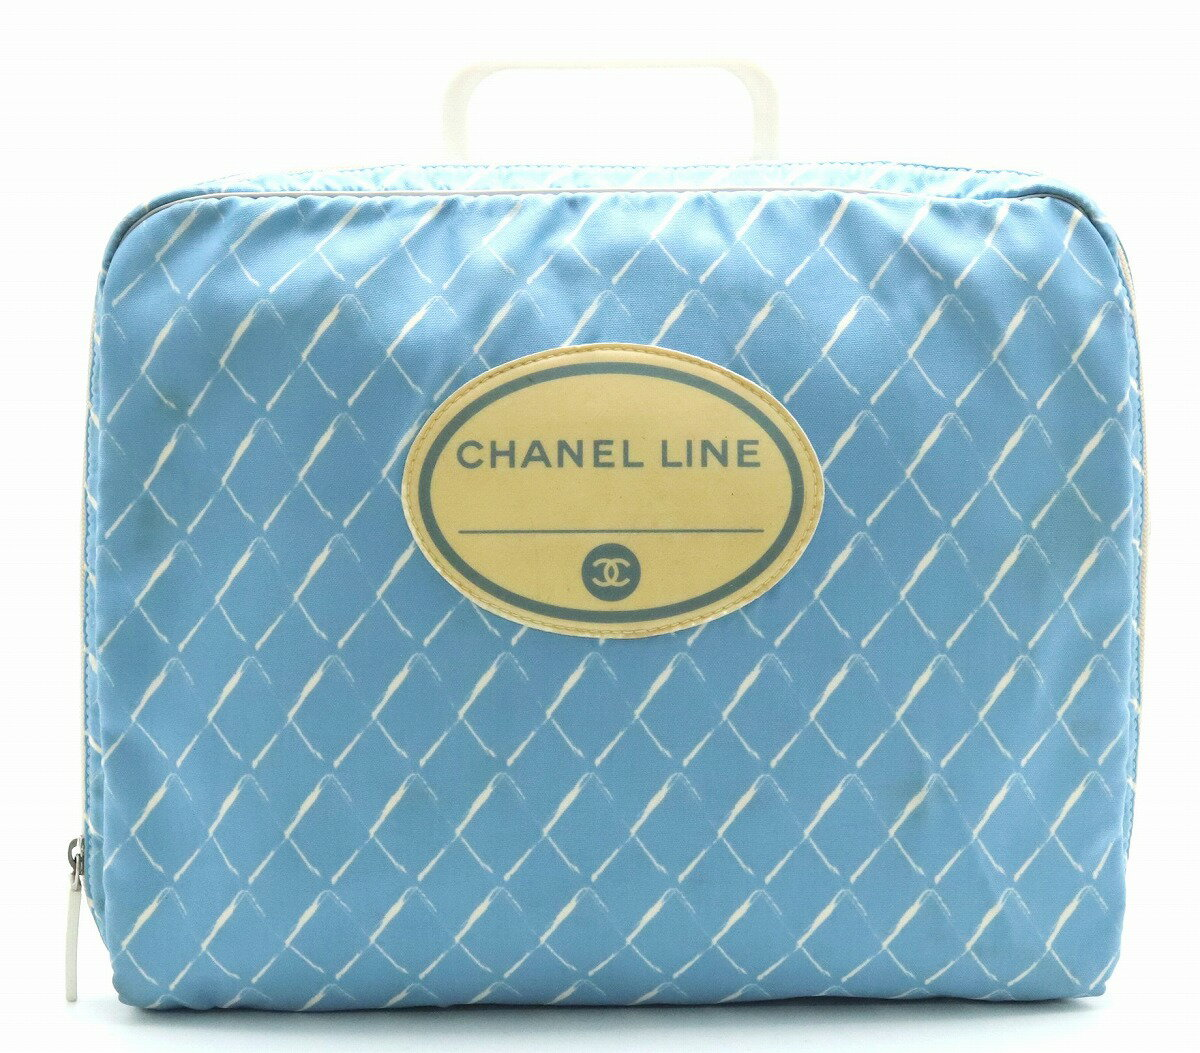 CHANEL nylon bag CHANEL s